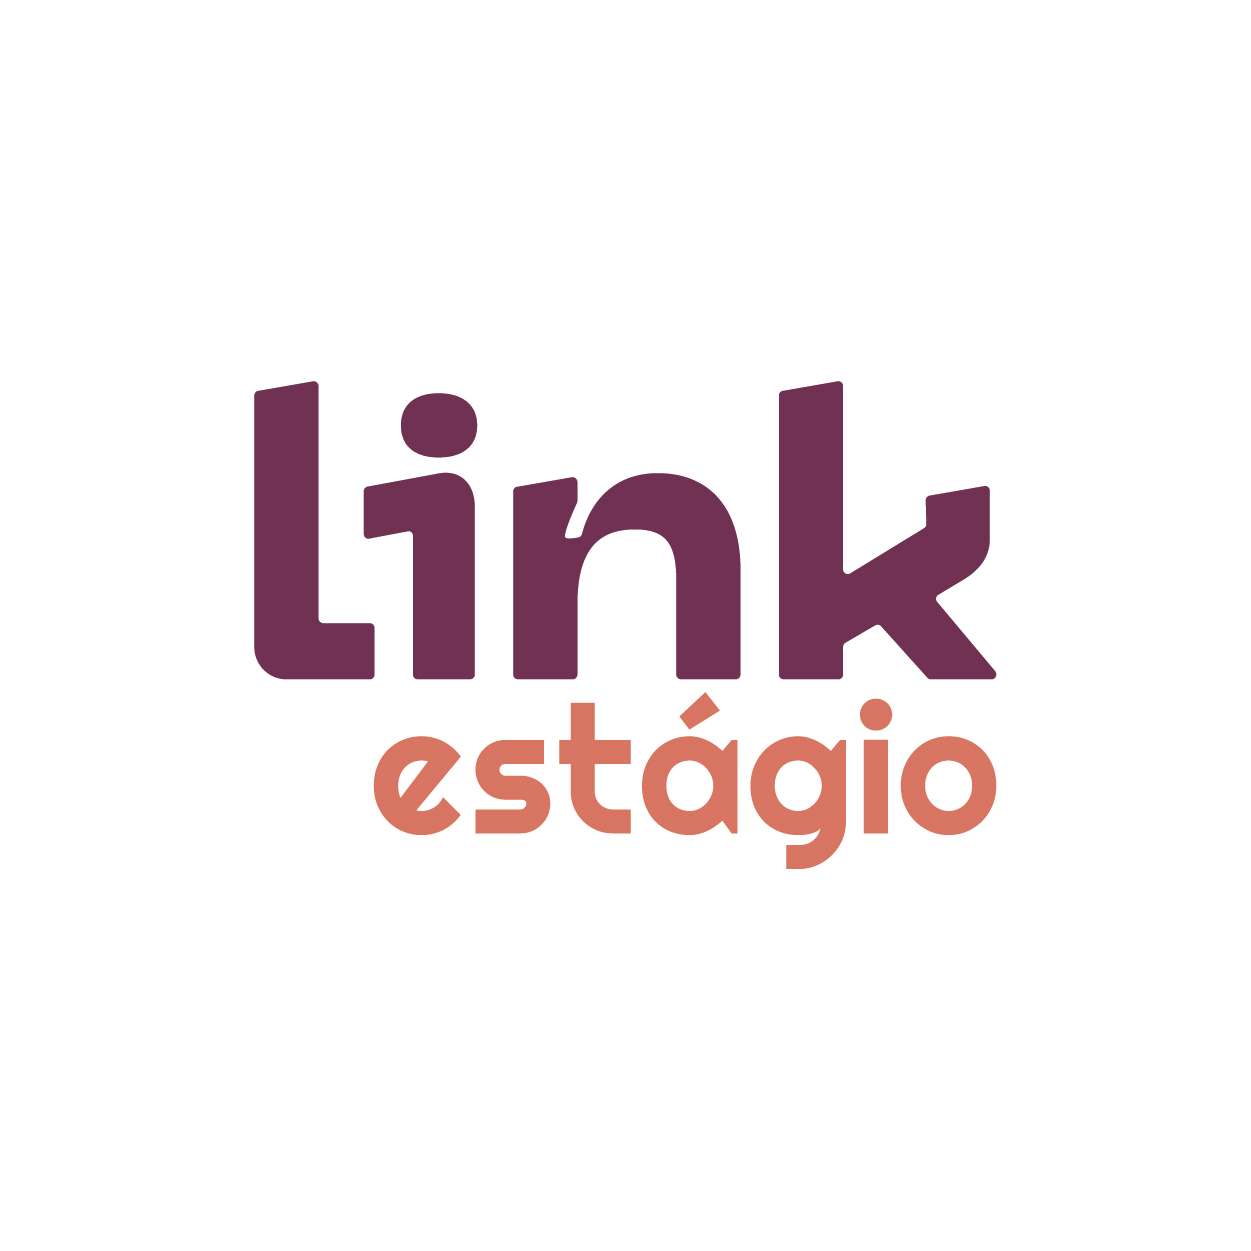 Logotipo link estagios1 02